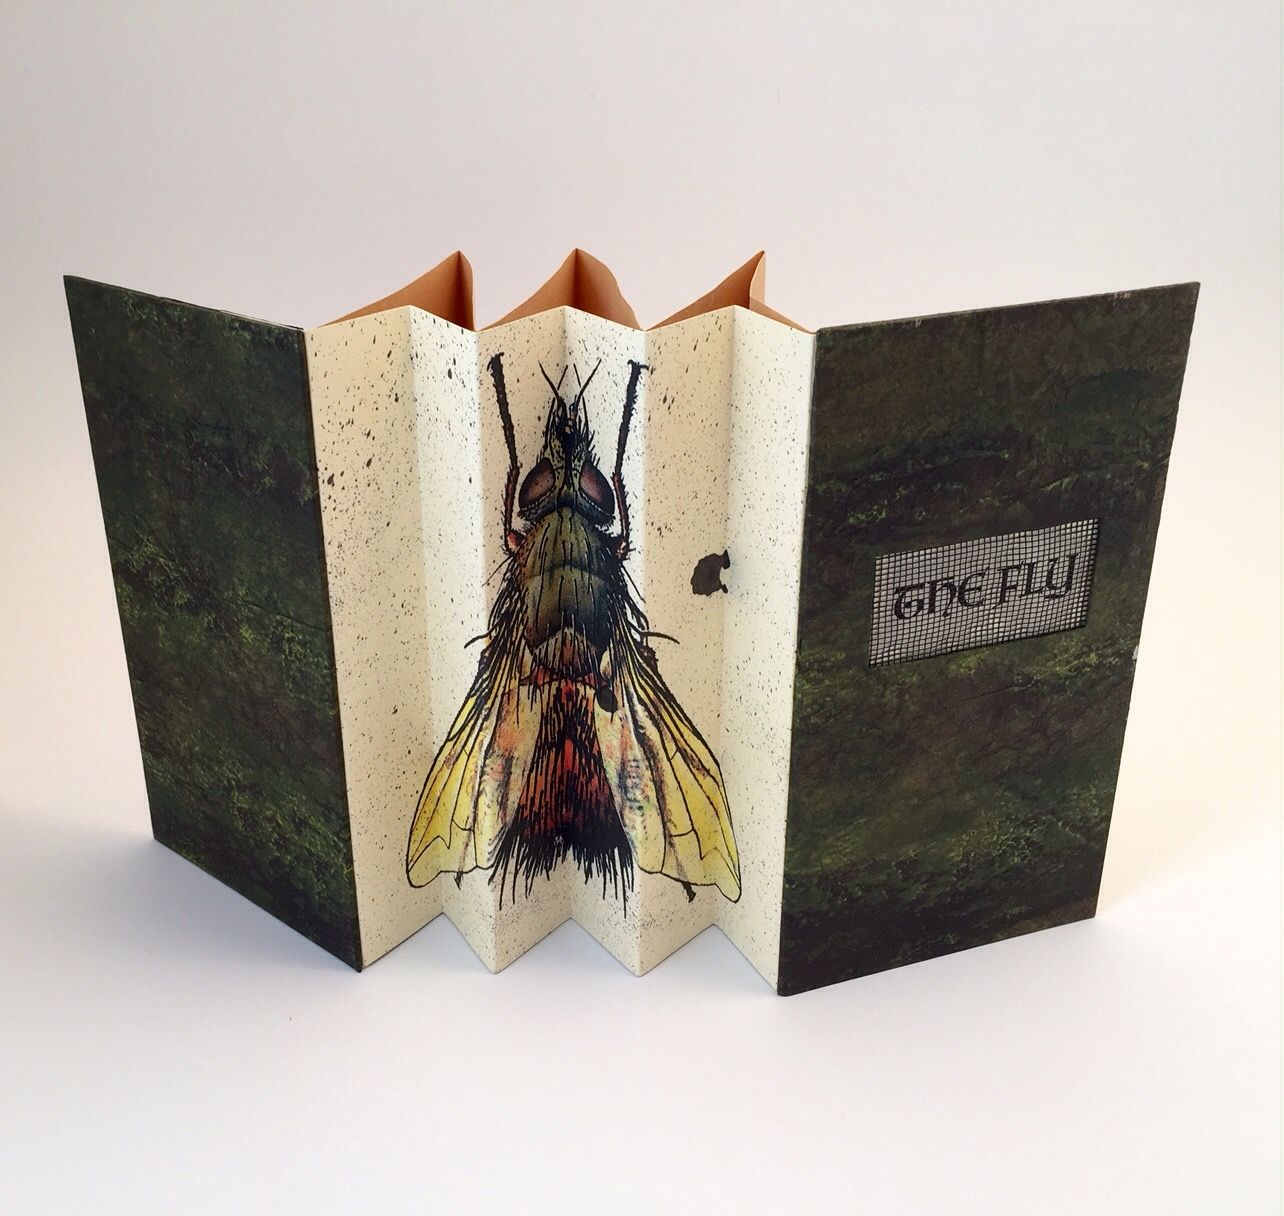 the fly by michele olsen 2 concertinas one for spine one for pages